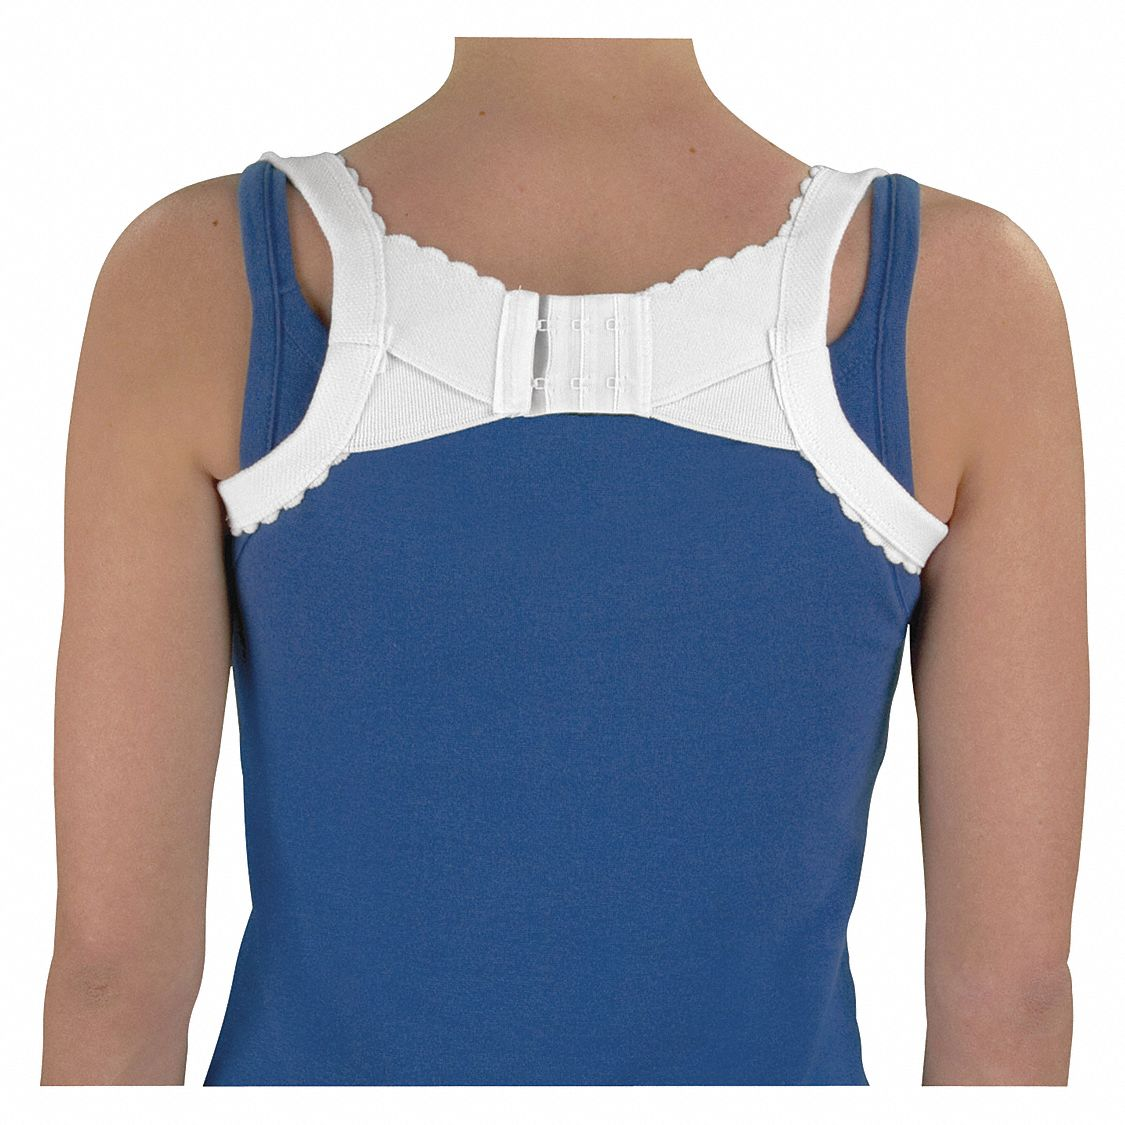 One Size Fits Most Elastic Posture Corrector